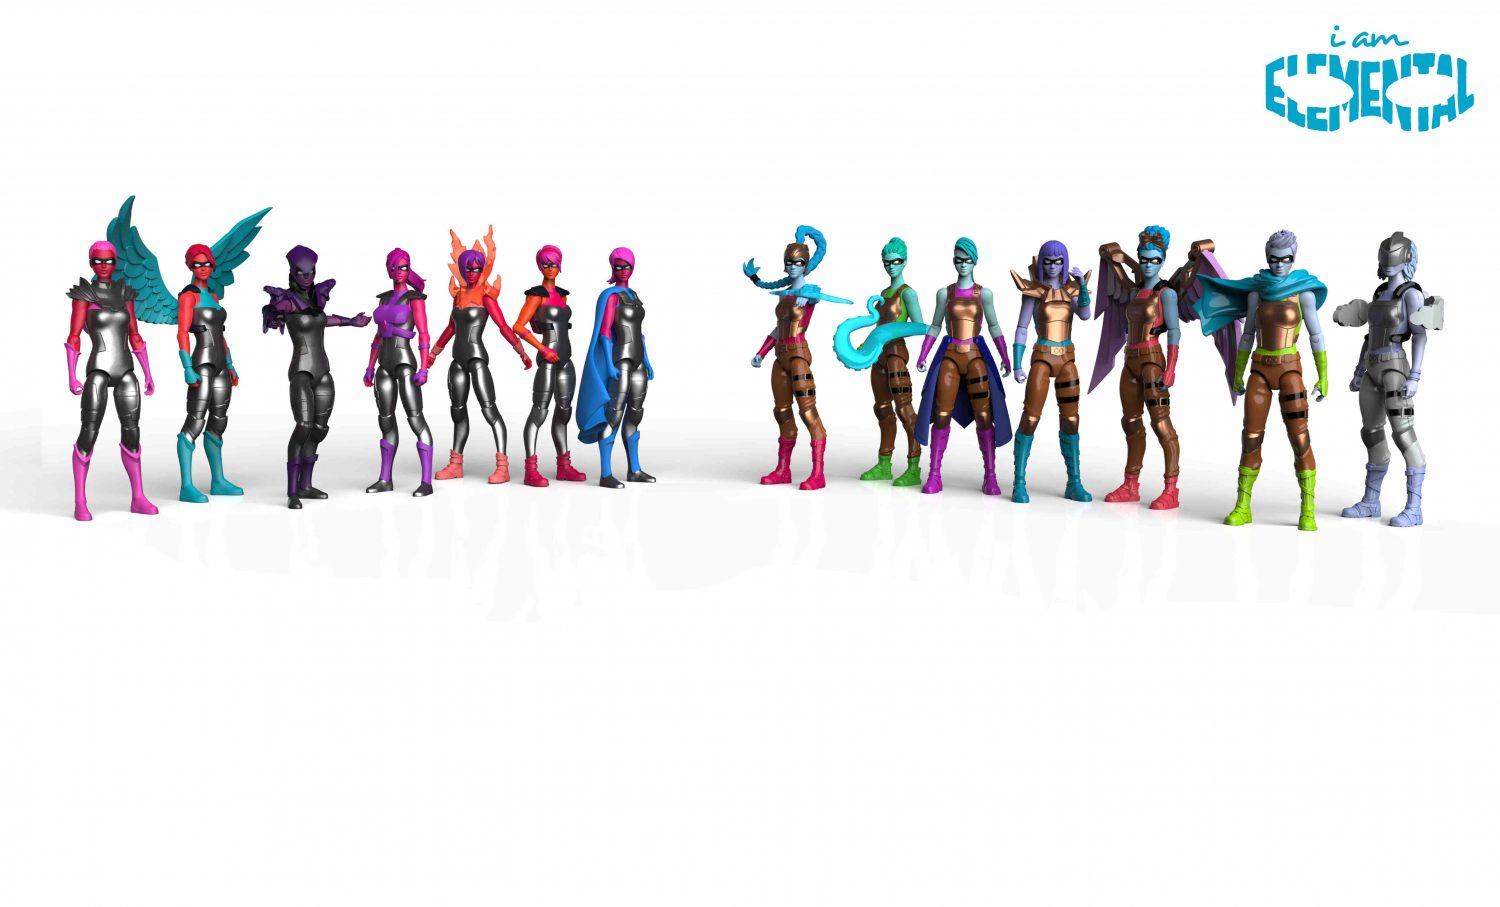 The Jim Henson Company To Develop Kids Series Based In IAmElemental's Female Action Figures